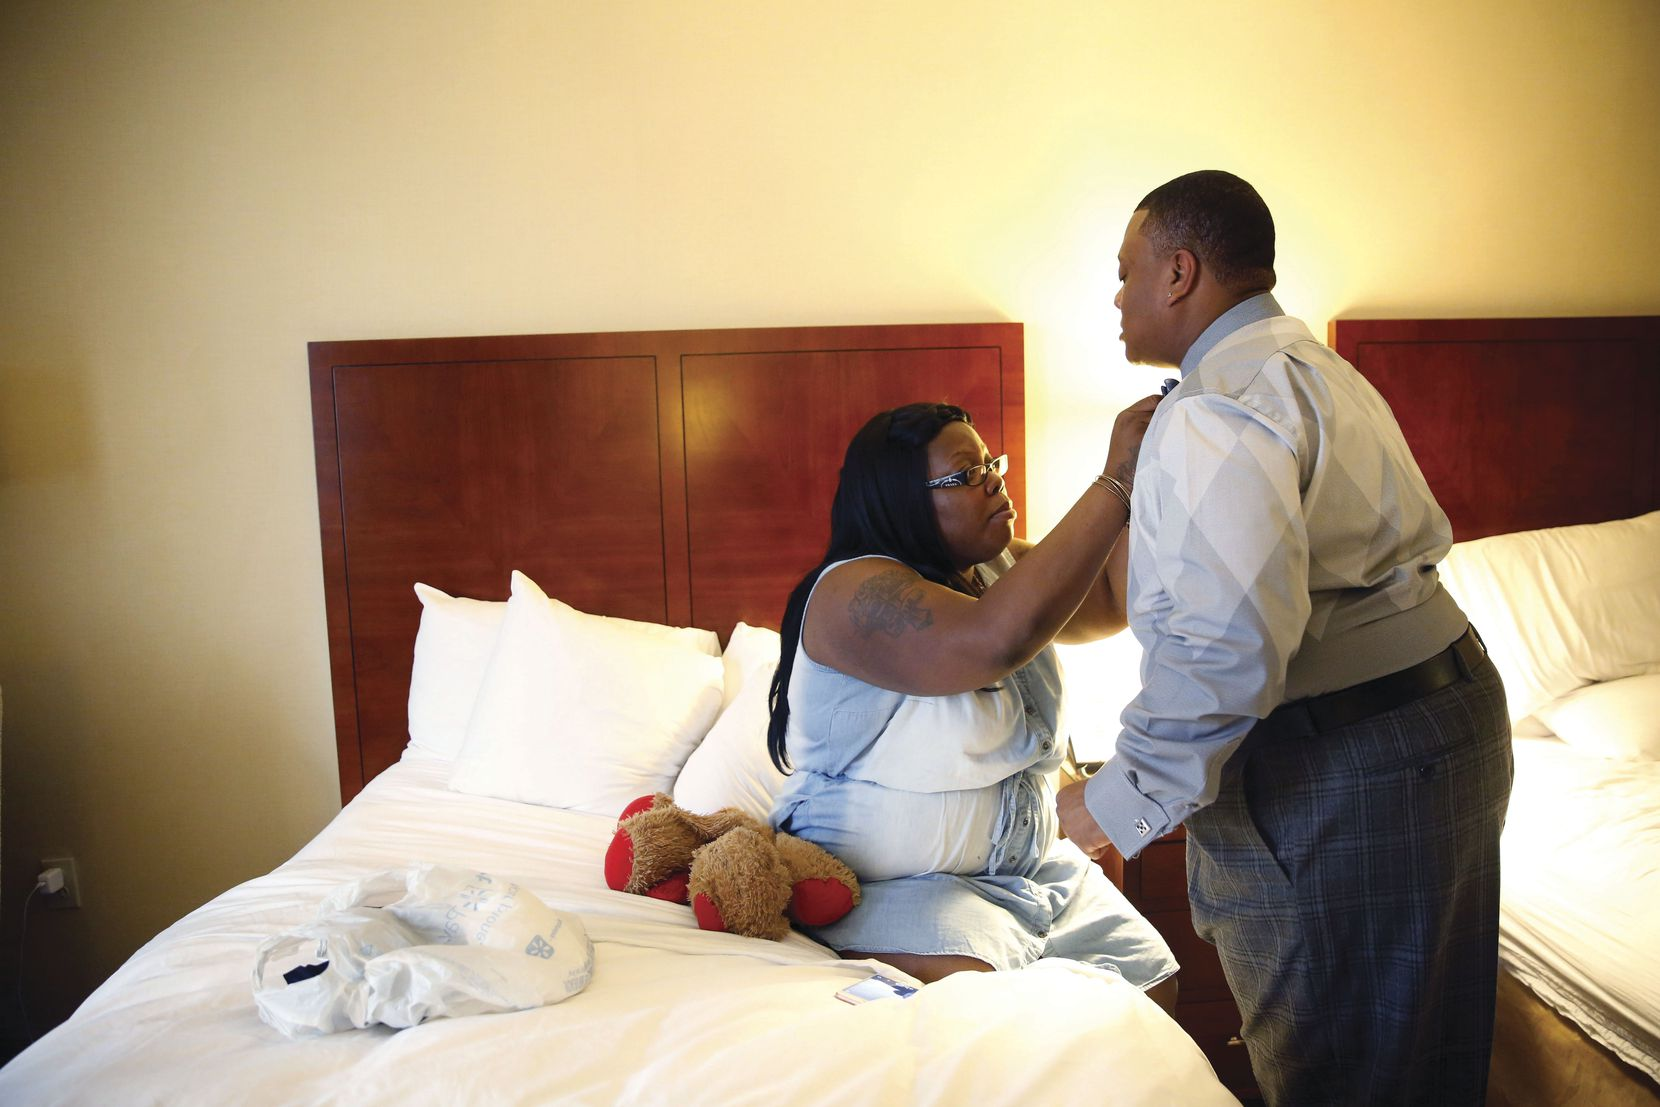 Trenton Johnson, a transgender man, lets his fiancée, Bridget Charleston, straighten his bowtie in his hotel room before the Black Trans Advocacy Conference gala in Dallas.